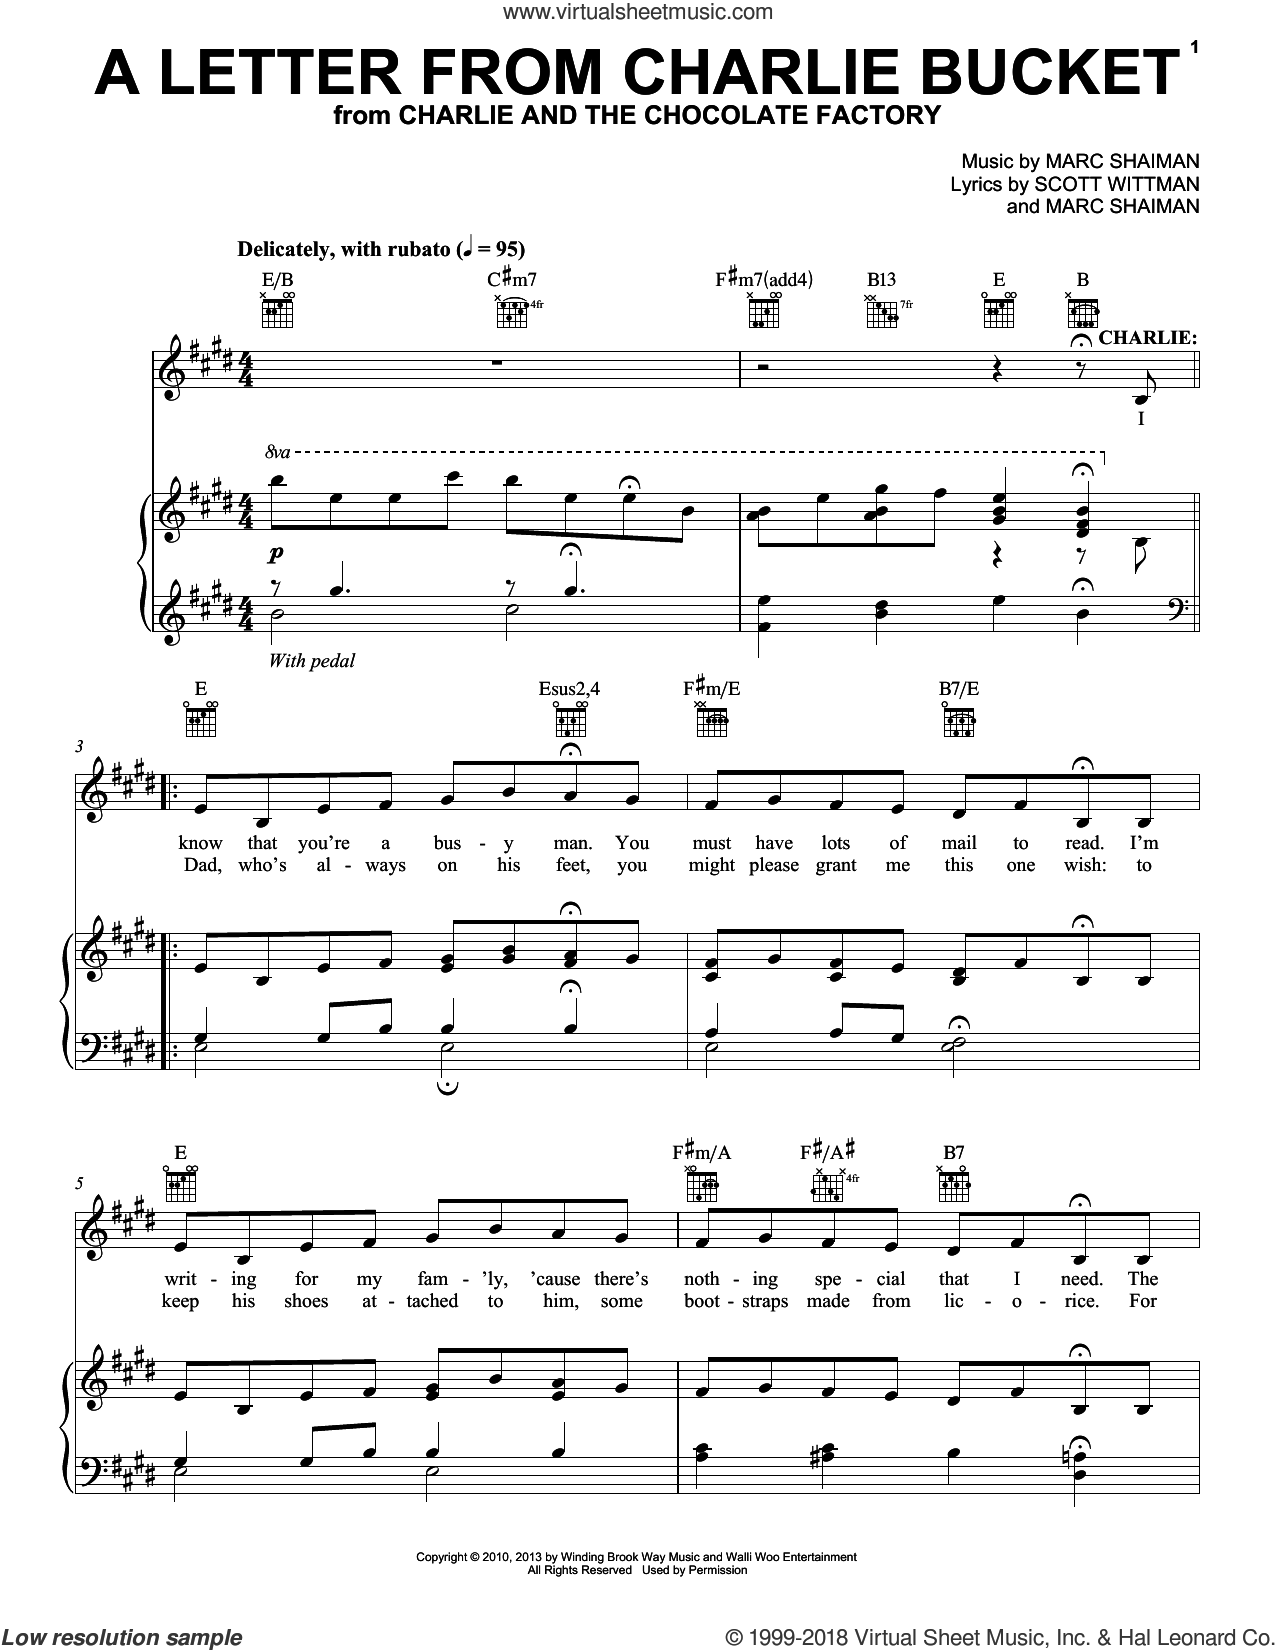 A Letter From Charlie Bucket sheet music for voice, piano or guitar by Marc Shaiman & Scott Wittman, Marc Shaiman and Scott Wittman, intermediate skill level